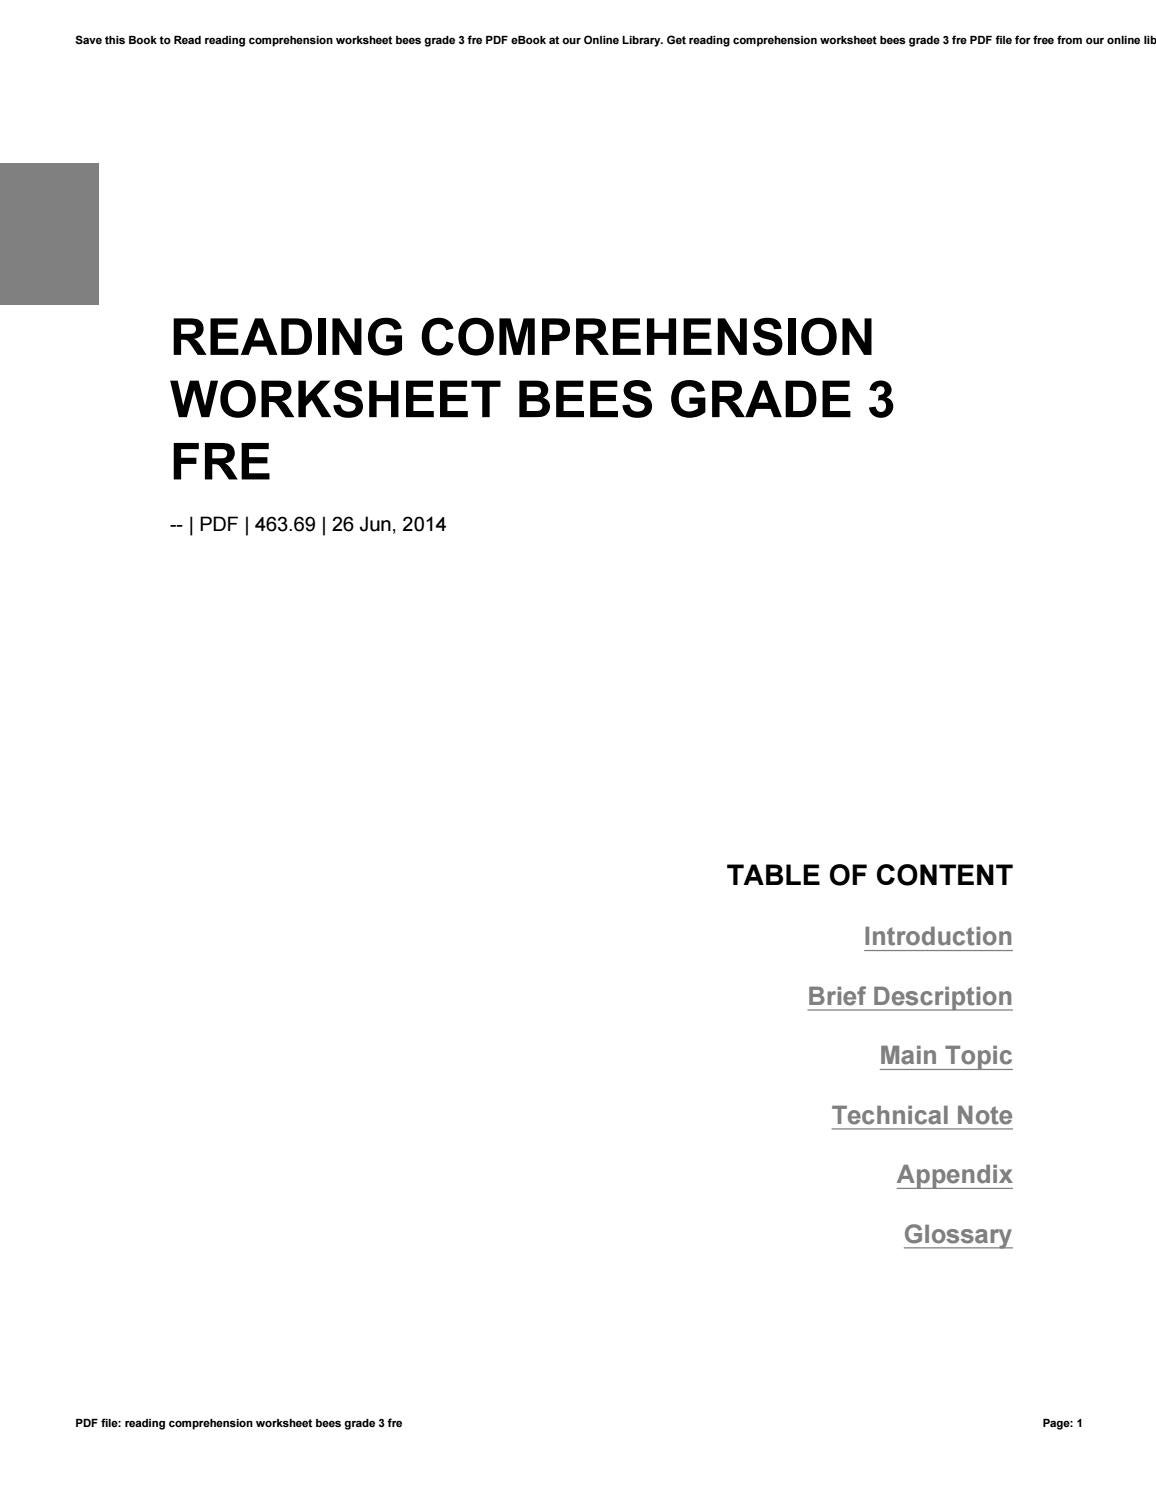 hight resolution of Reading comprehension worksheet bees grade 3 fre by dimas435anggara - issuu